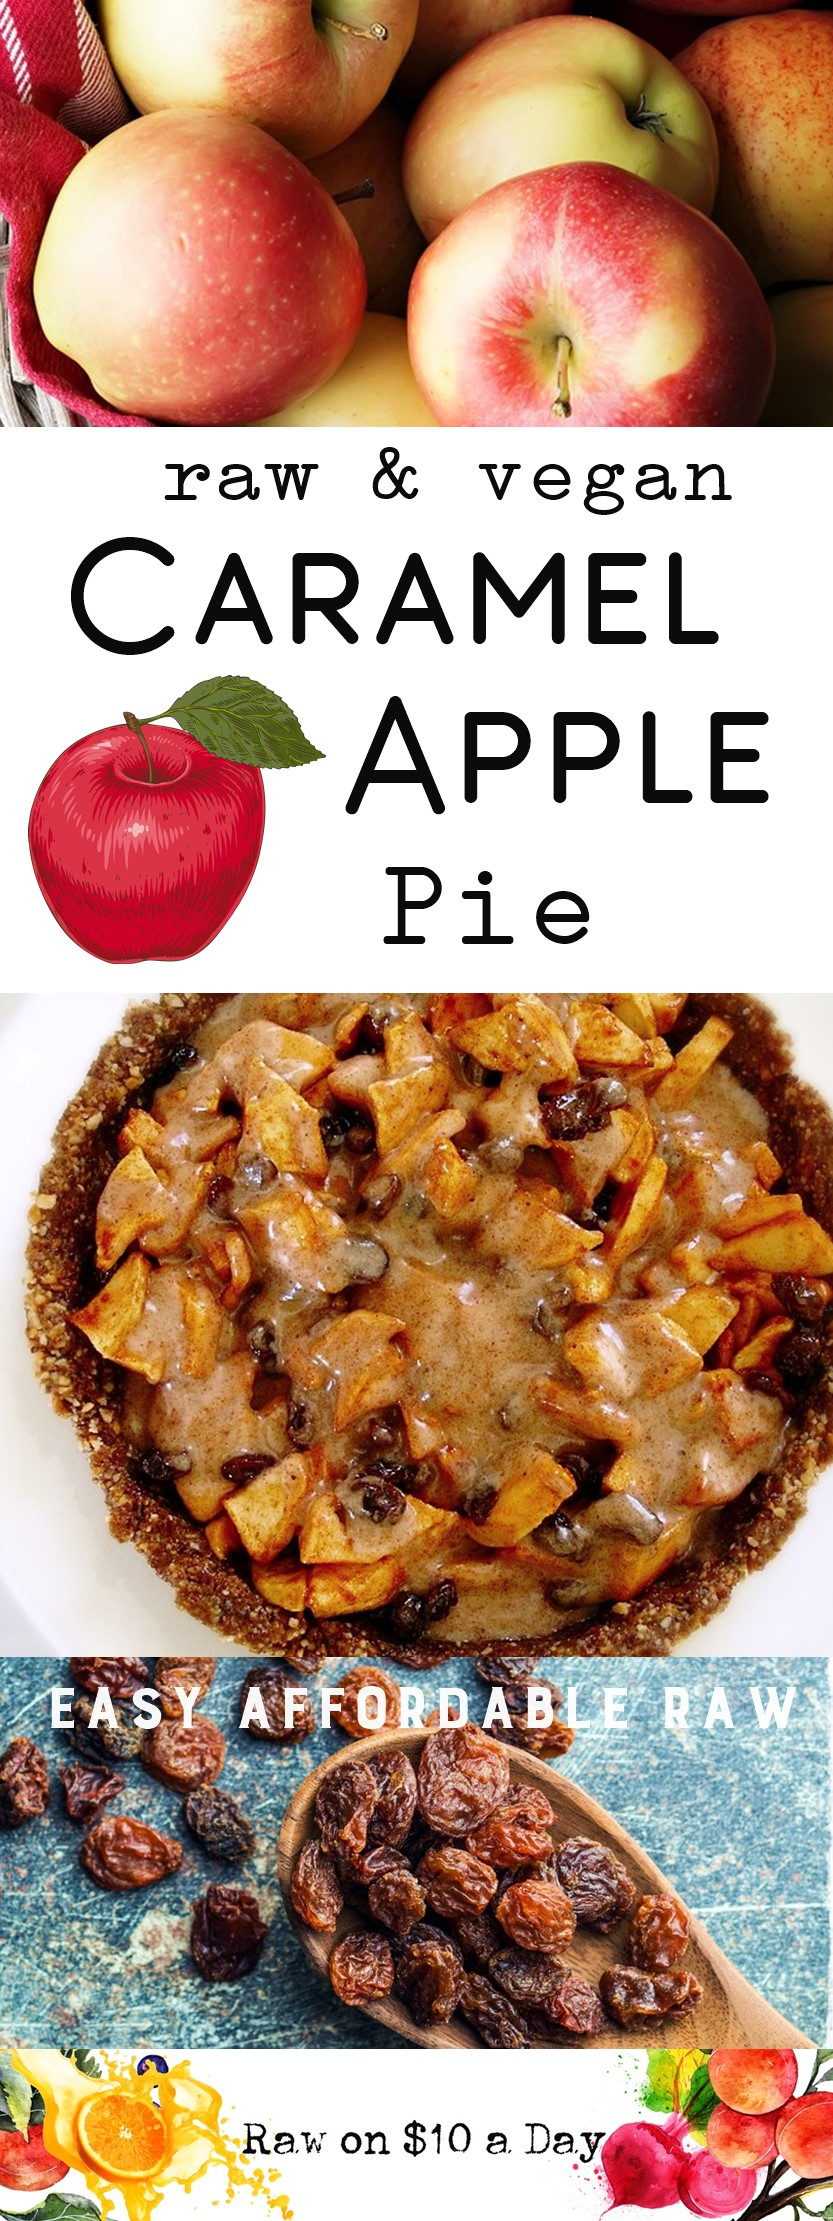 Caramel Apple Pie Raw Vegan Recipe Healthy and Delicious Recipe for the Holidays Plant-Based Raw Food Rawon10 Planted365 #rawfood #rawvegan #rawfoodrecipe #rawfooddessert #veganrecipe PIN IT